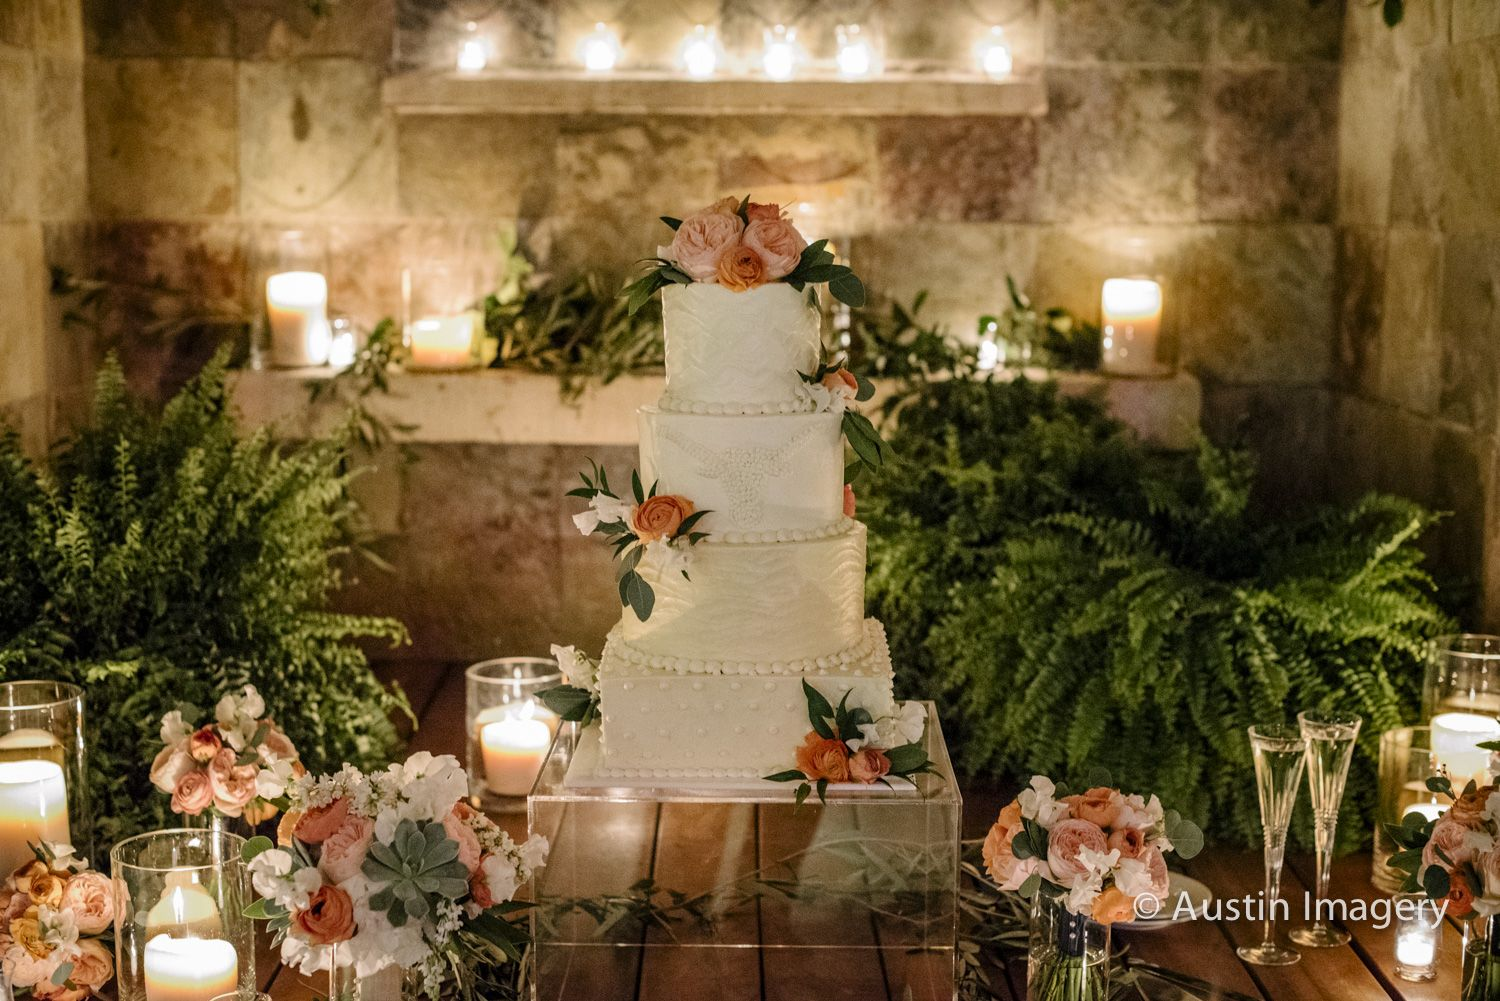 Clusters of pillar candles and green Boston ferns in the base of the grotto and gold mercury glass votives on the ledges